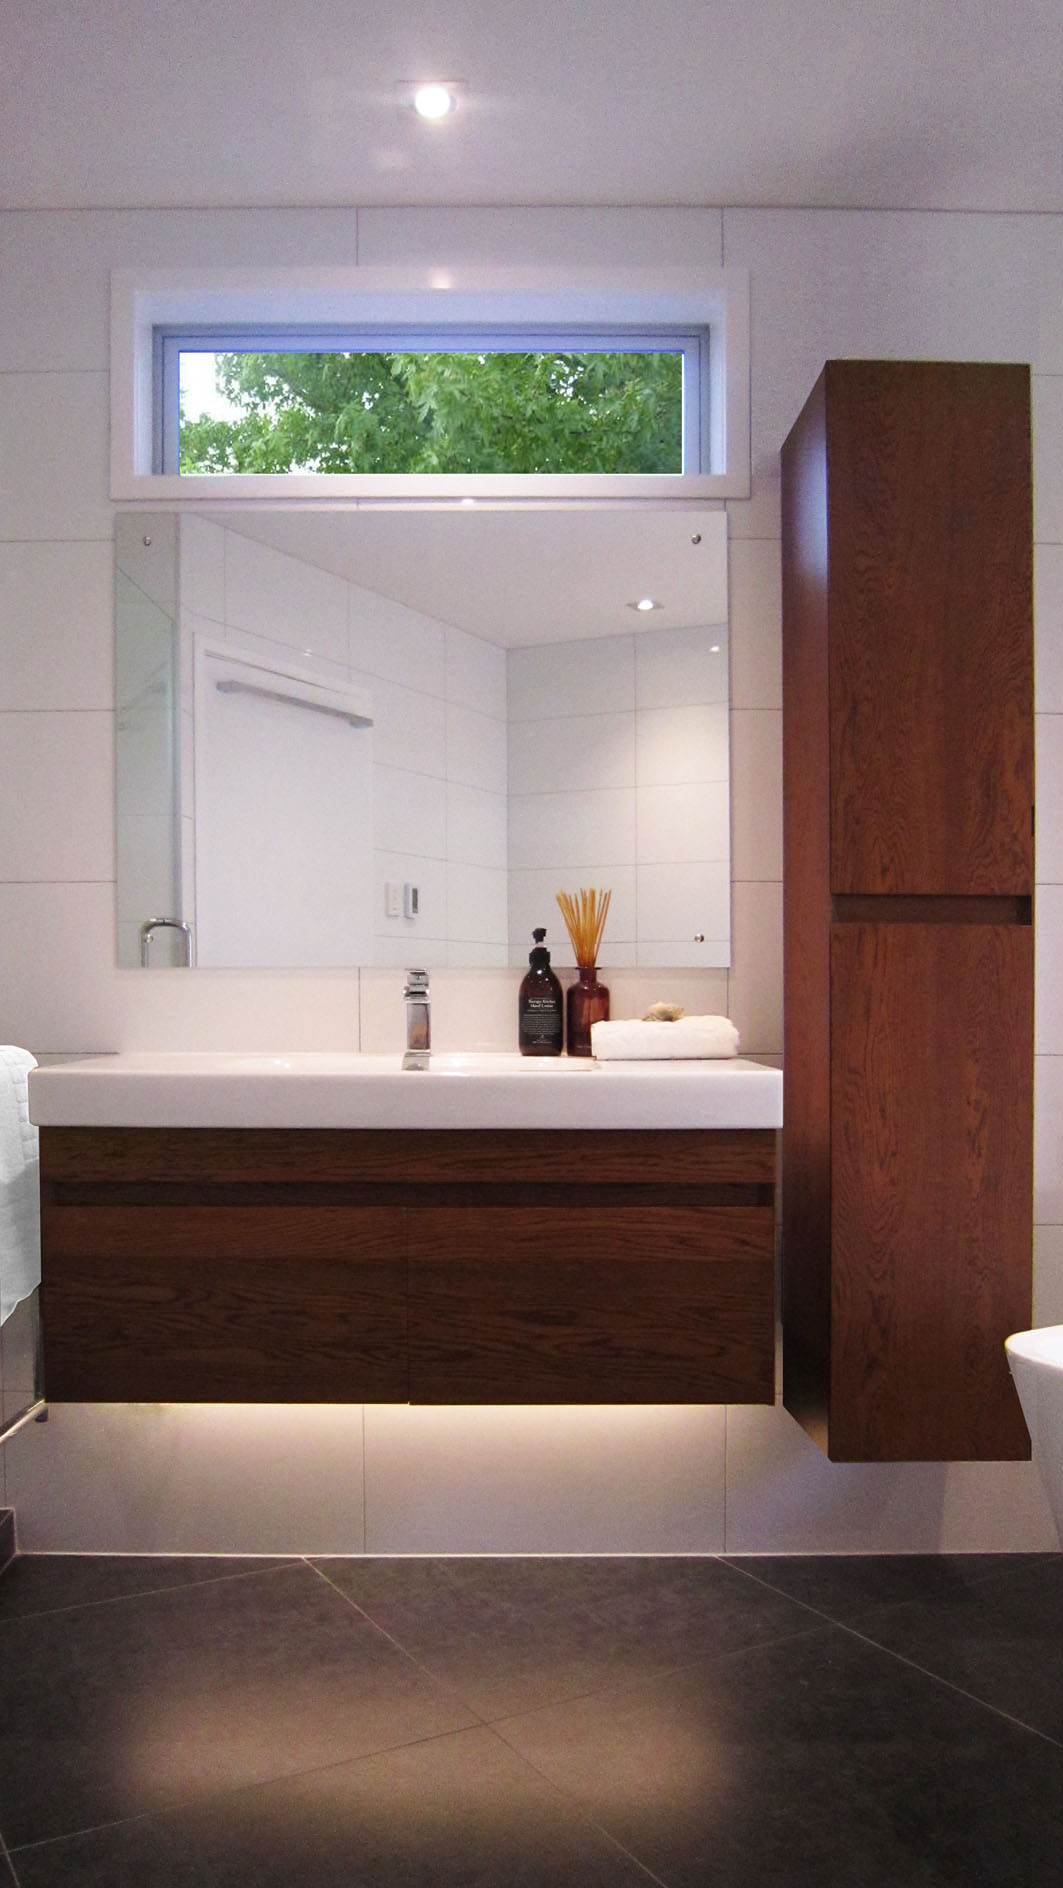 Design Haus Bathroom Specialists Renovations New Bathrooms Bathrooms